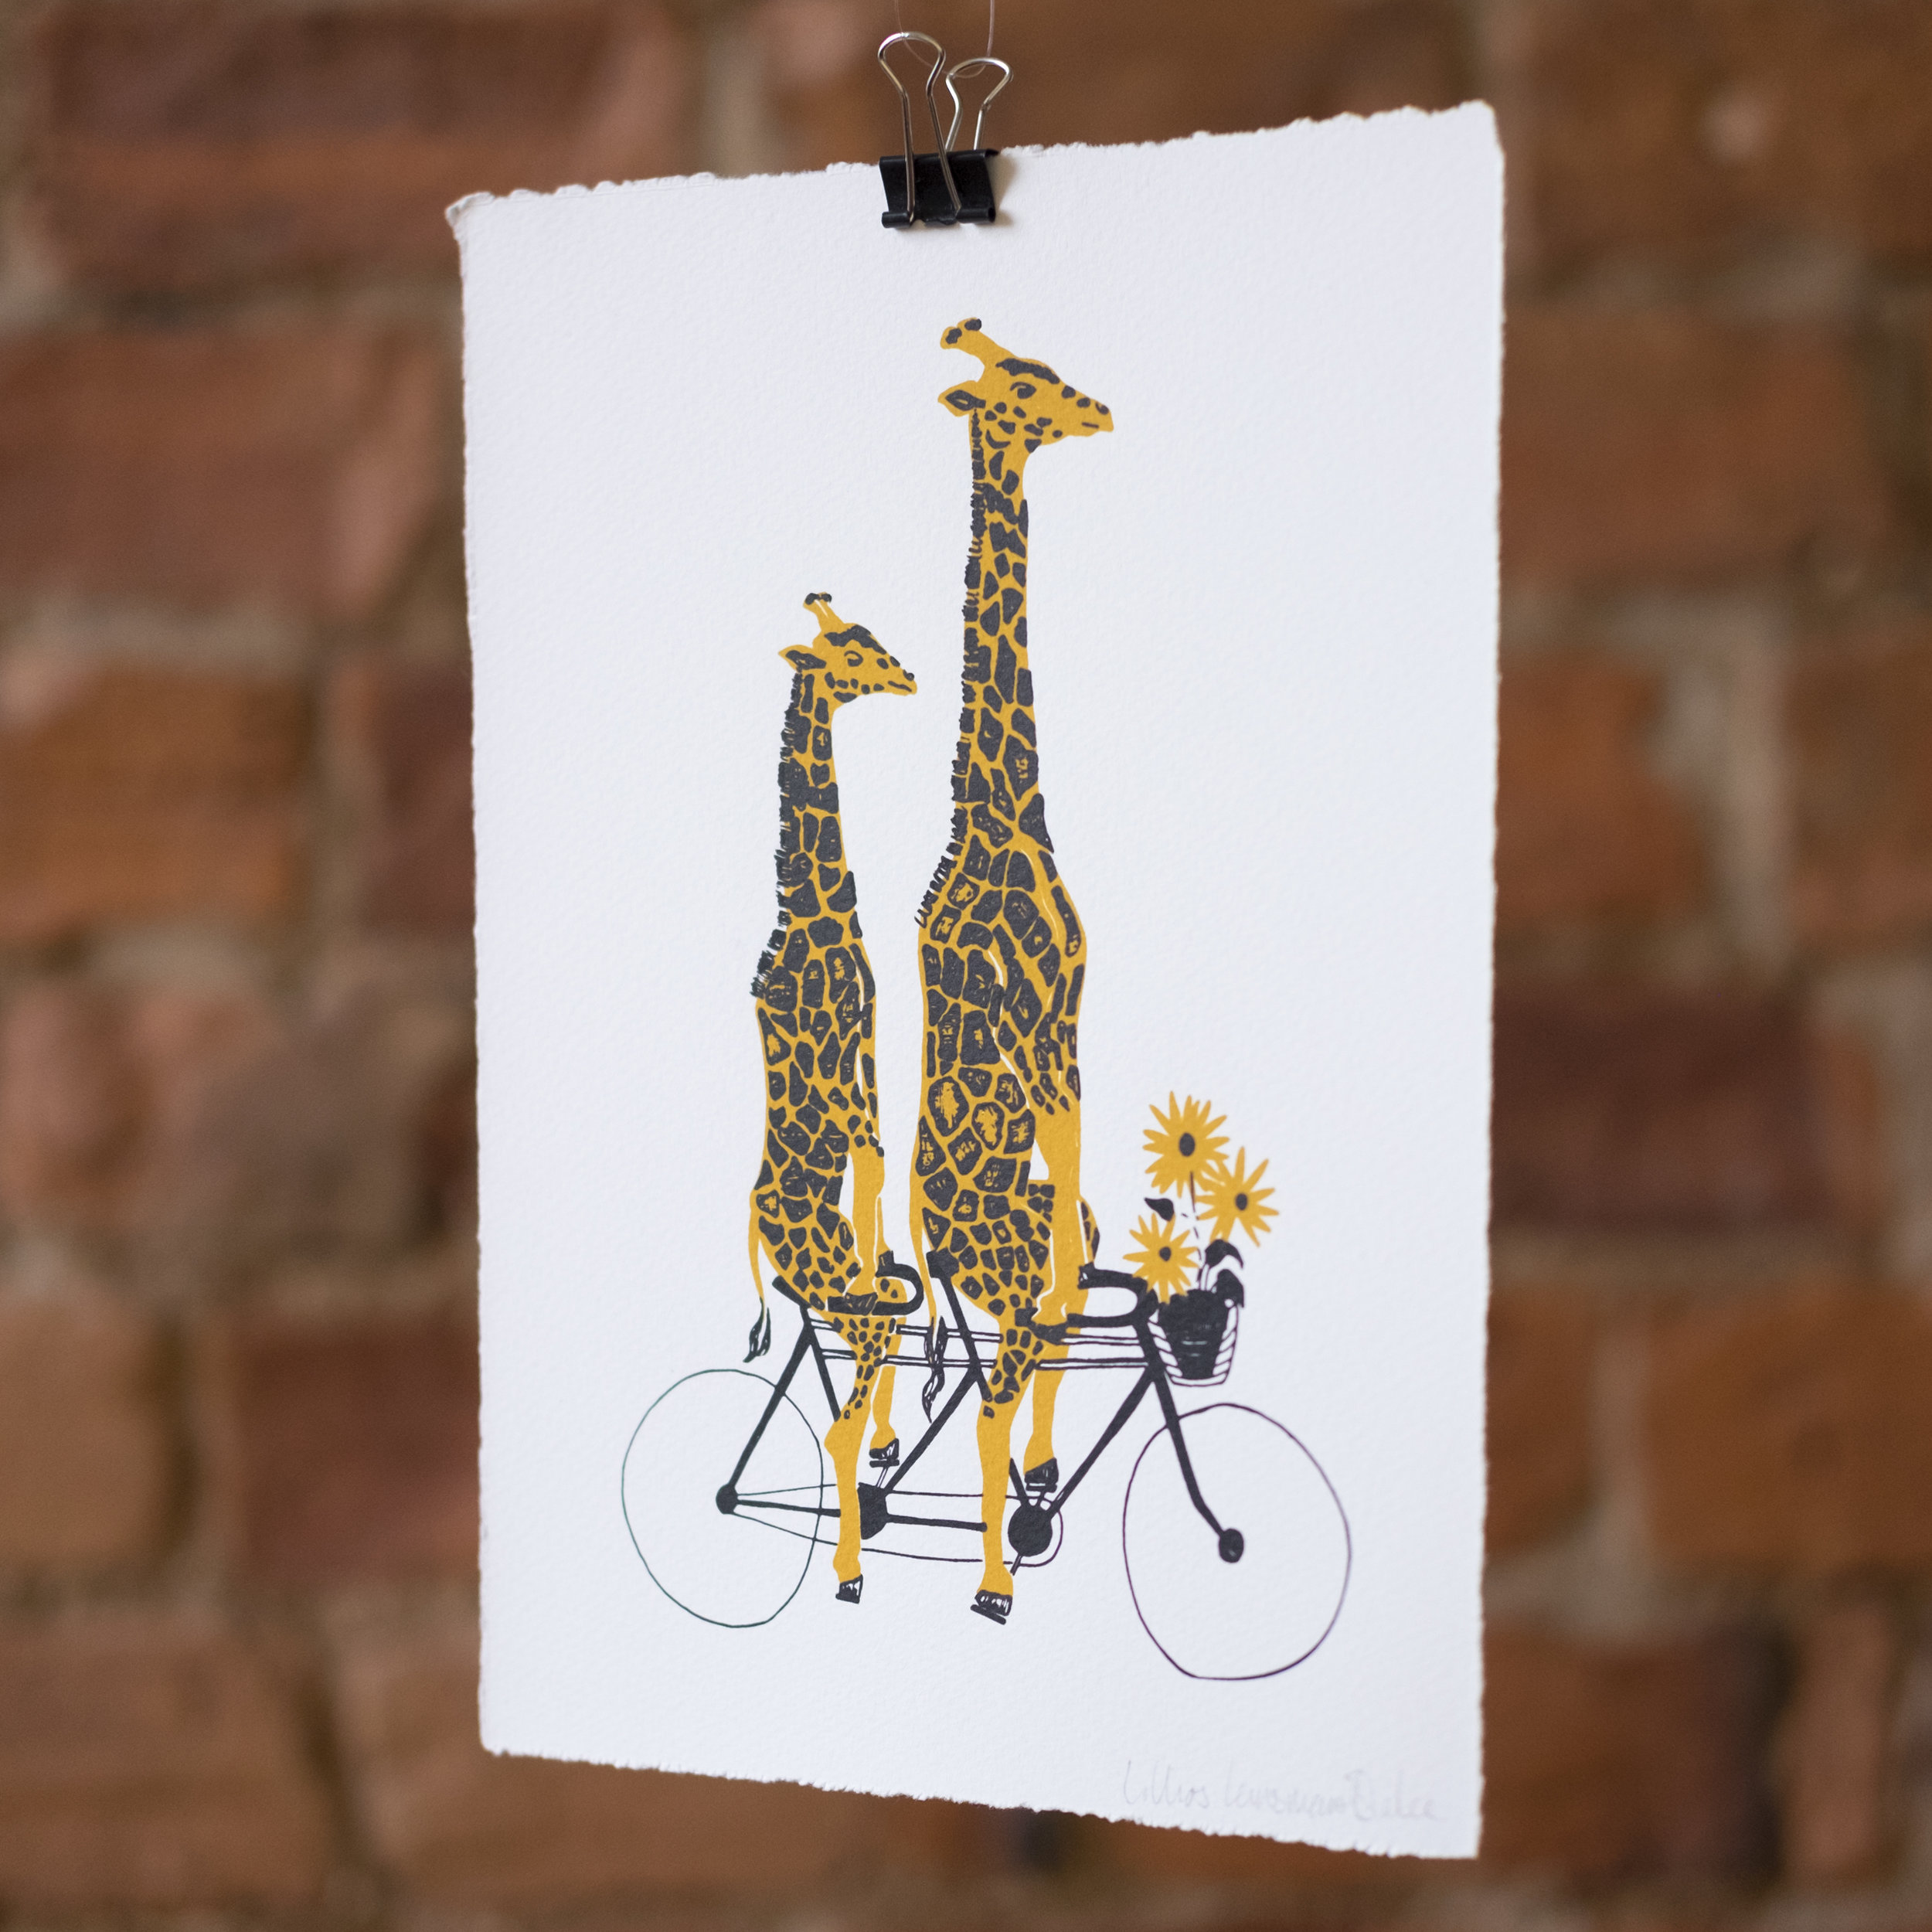 A Bicycle Built for Two. Giraffe ridding a Tandem Bicycle. Screen Print.